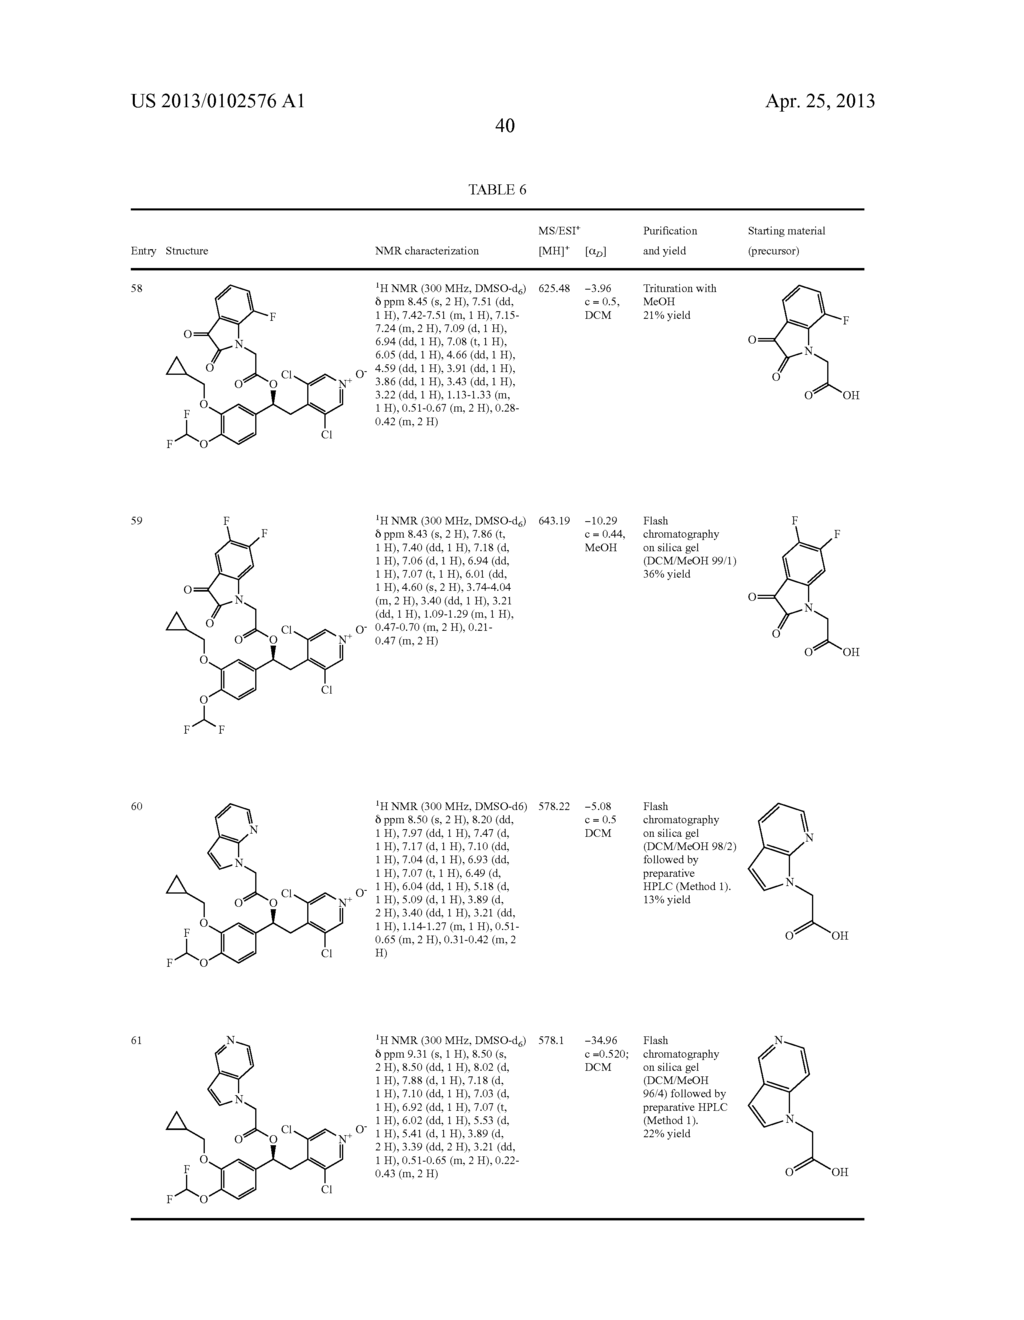 DERIVATIVES OF 1-PHENYL-2-PYRIDINYL ALKYL ALCOHOLS AS PHOSPHODIESTERASE     INHIBITORS - diagram, schematic, and image 41